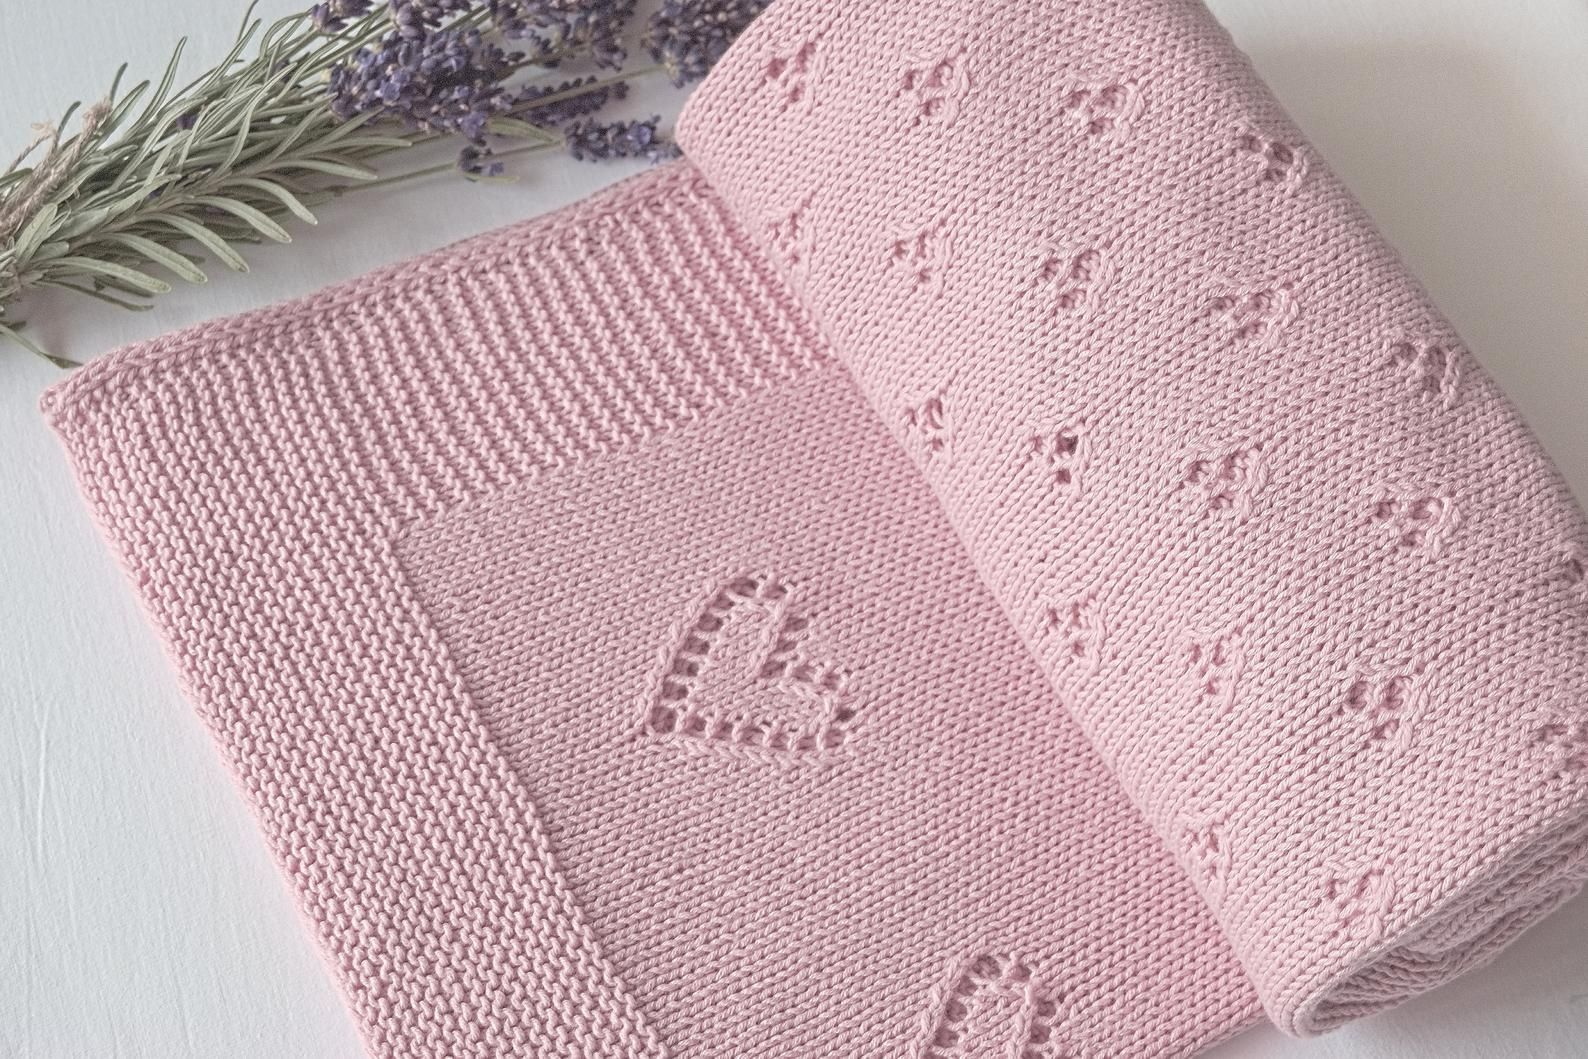 100 Cotton Hand Knitted Baby Blanket Pink Blanket In The Heart For Baby Stroller And Cot Environmentally Friendly Blanket Baby Stroller Blankets Knitted Baby Blanket Baby Knitting